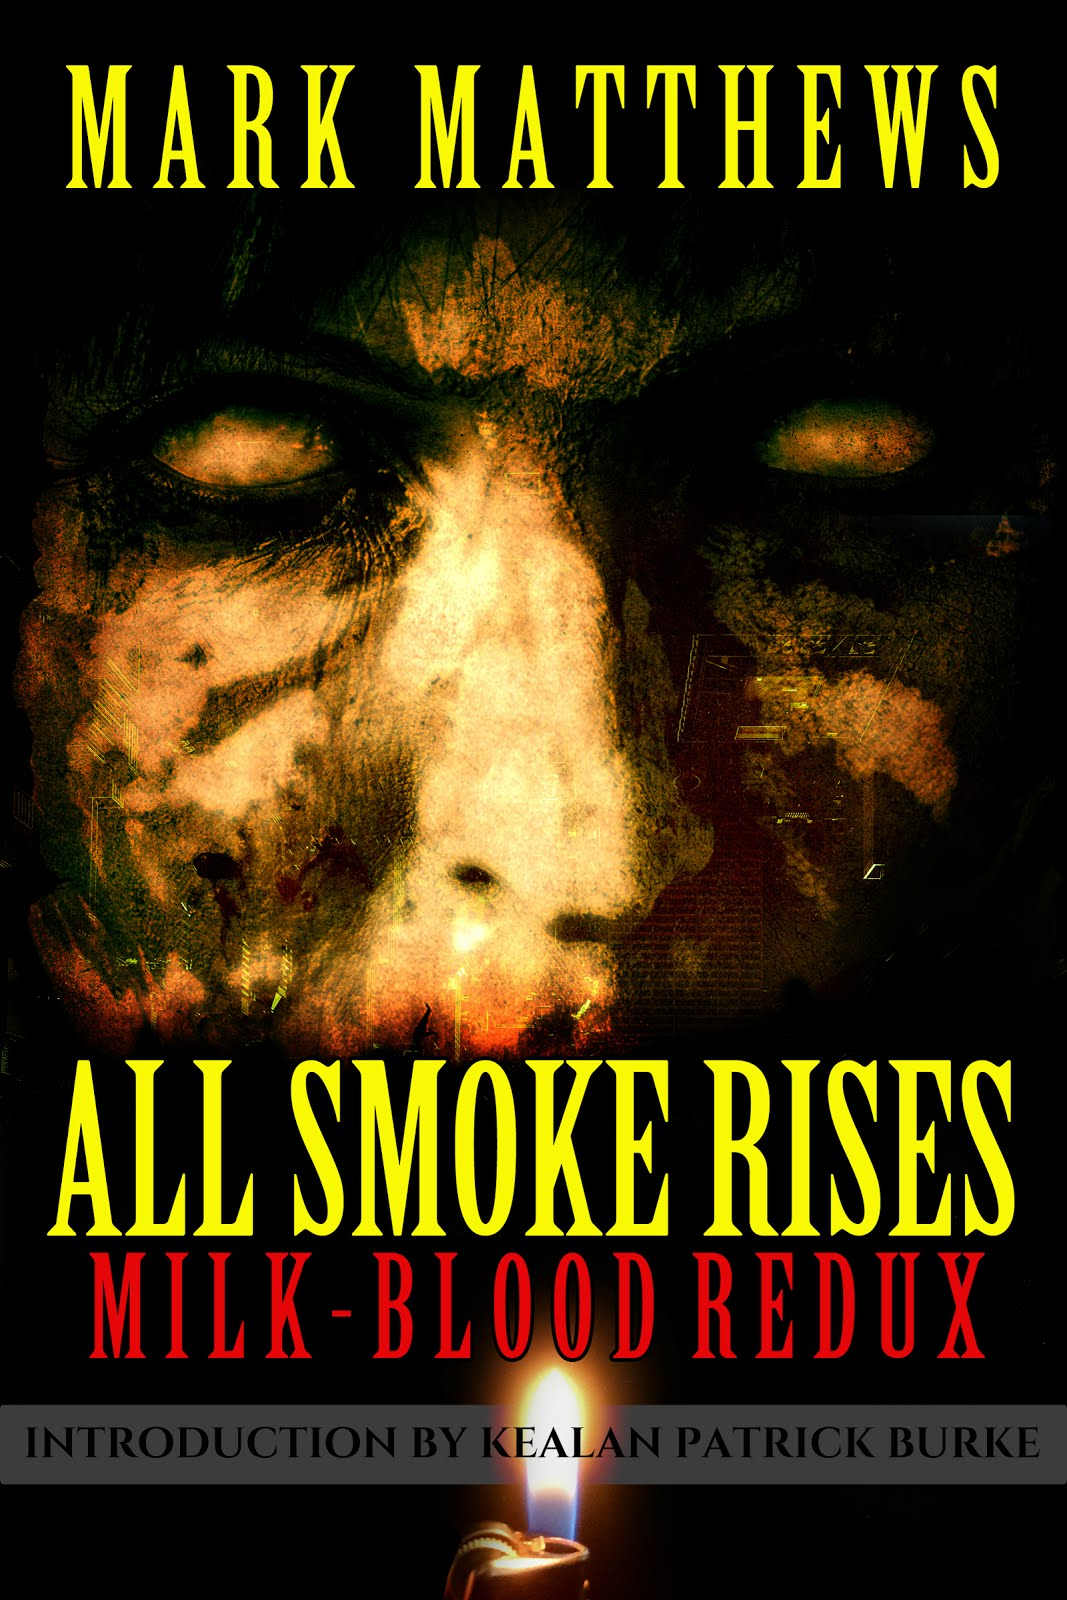 ALL SMOKE RISES